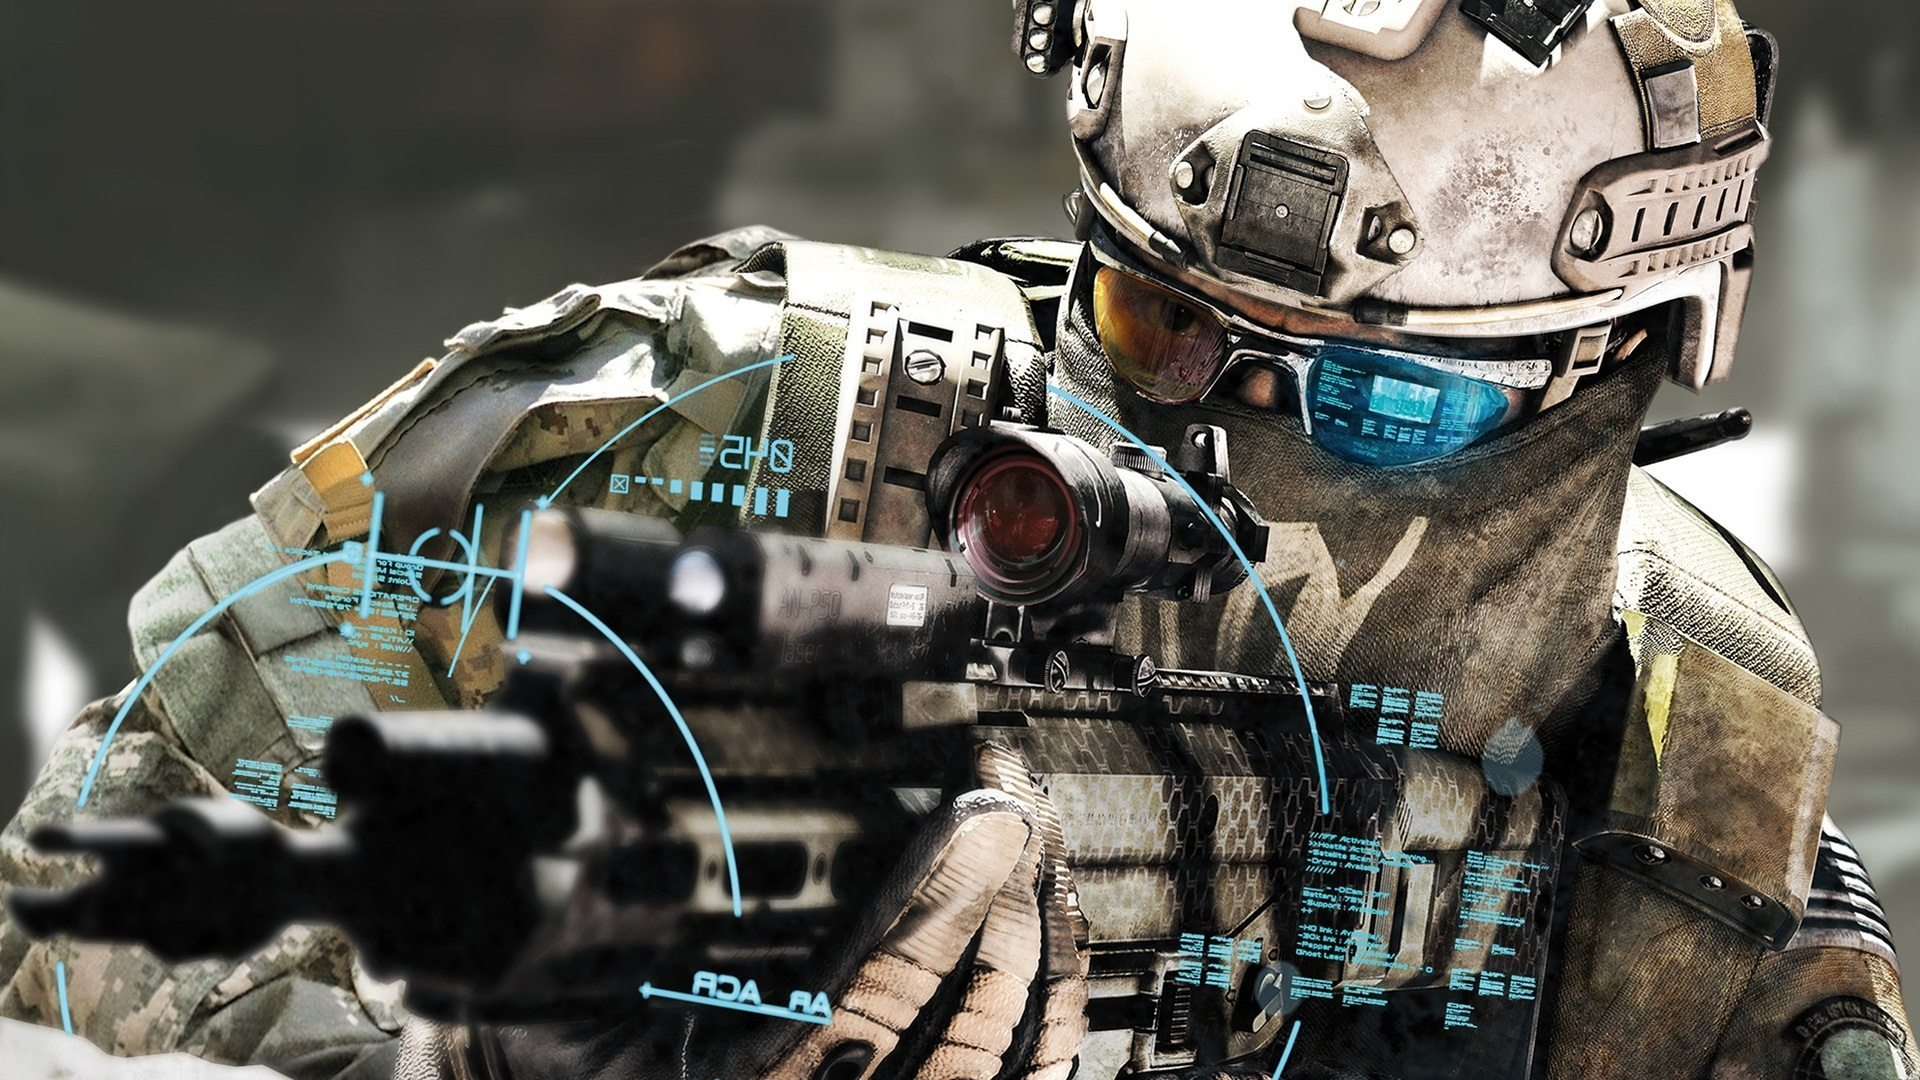 tom-clancy-ghost-recon-future-soldier-games-wallpapers-games-picture-tom-clancy-wallpaper